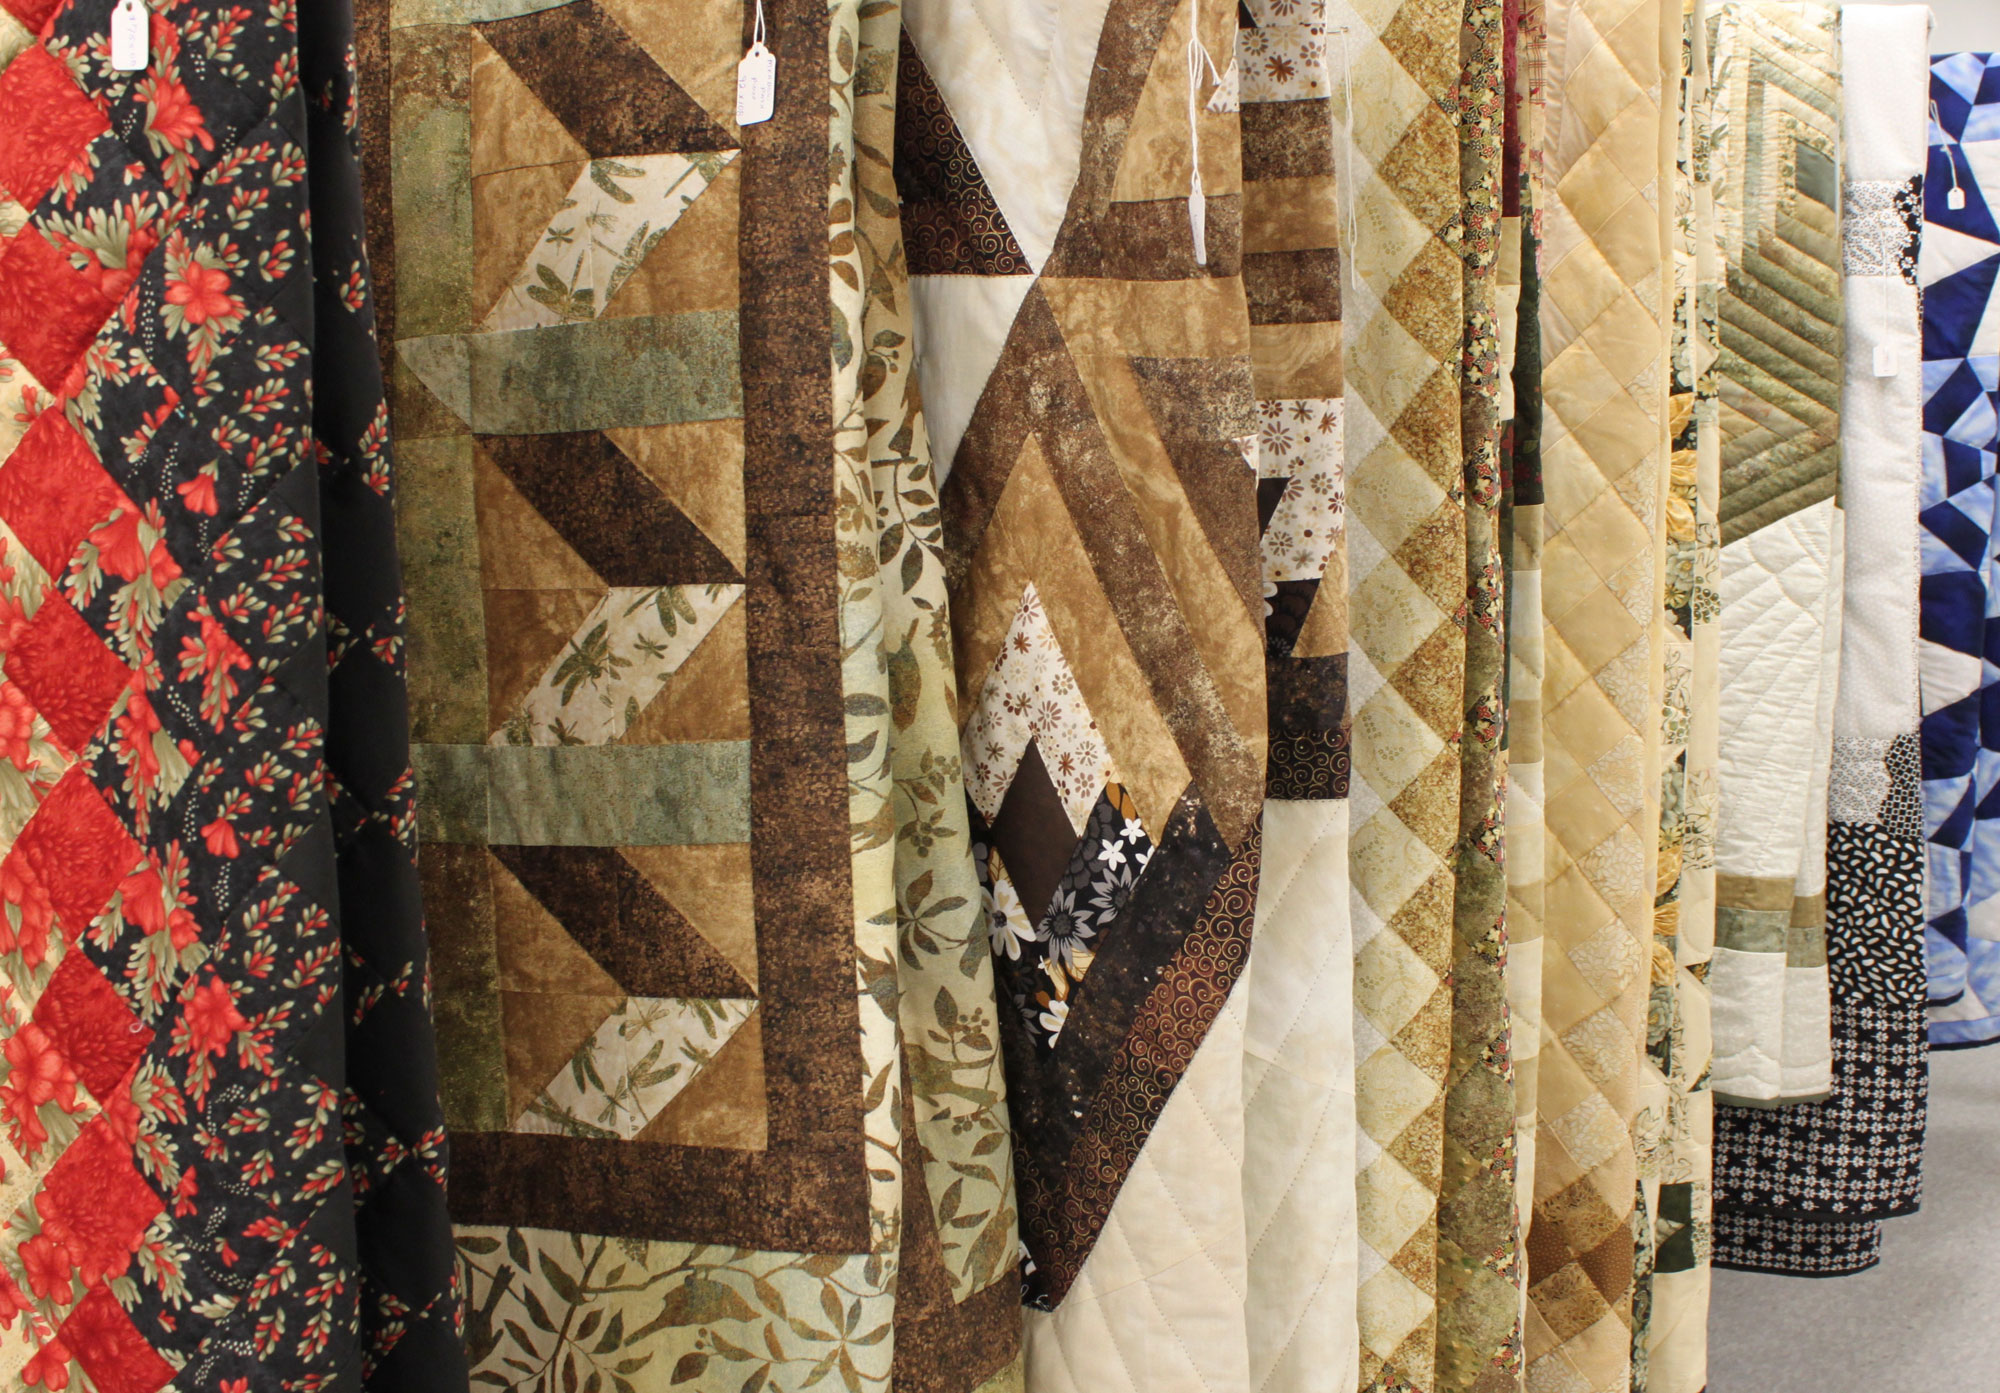 Quilts - We have hundreds of quilts for sale to match your bedroom décor! They are all handmade and built by our local Mennonite ladies.